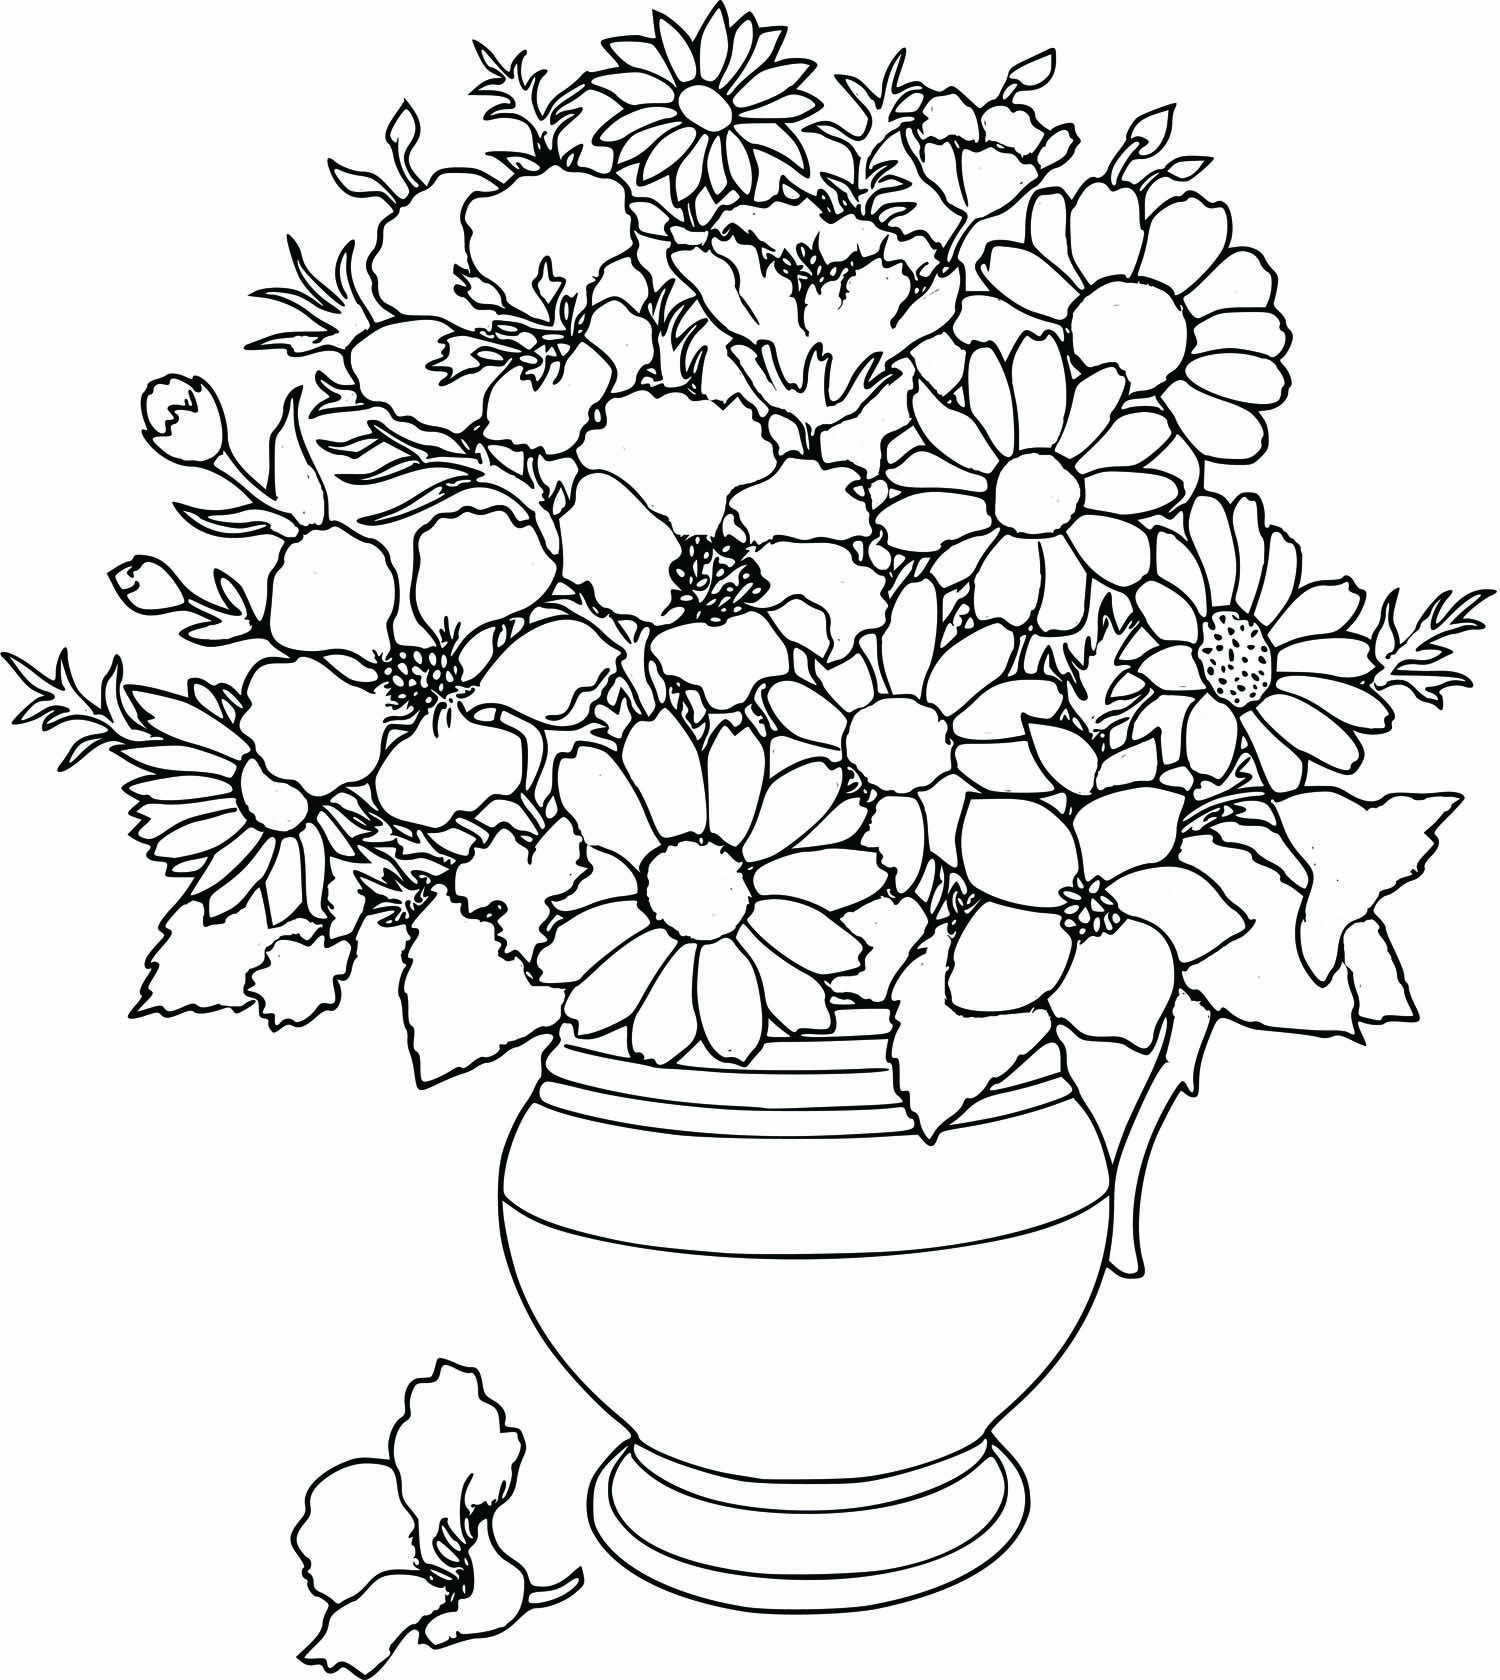 mothers day flowers coloring pages Free Large Images